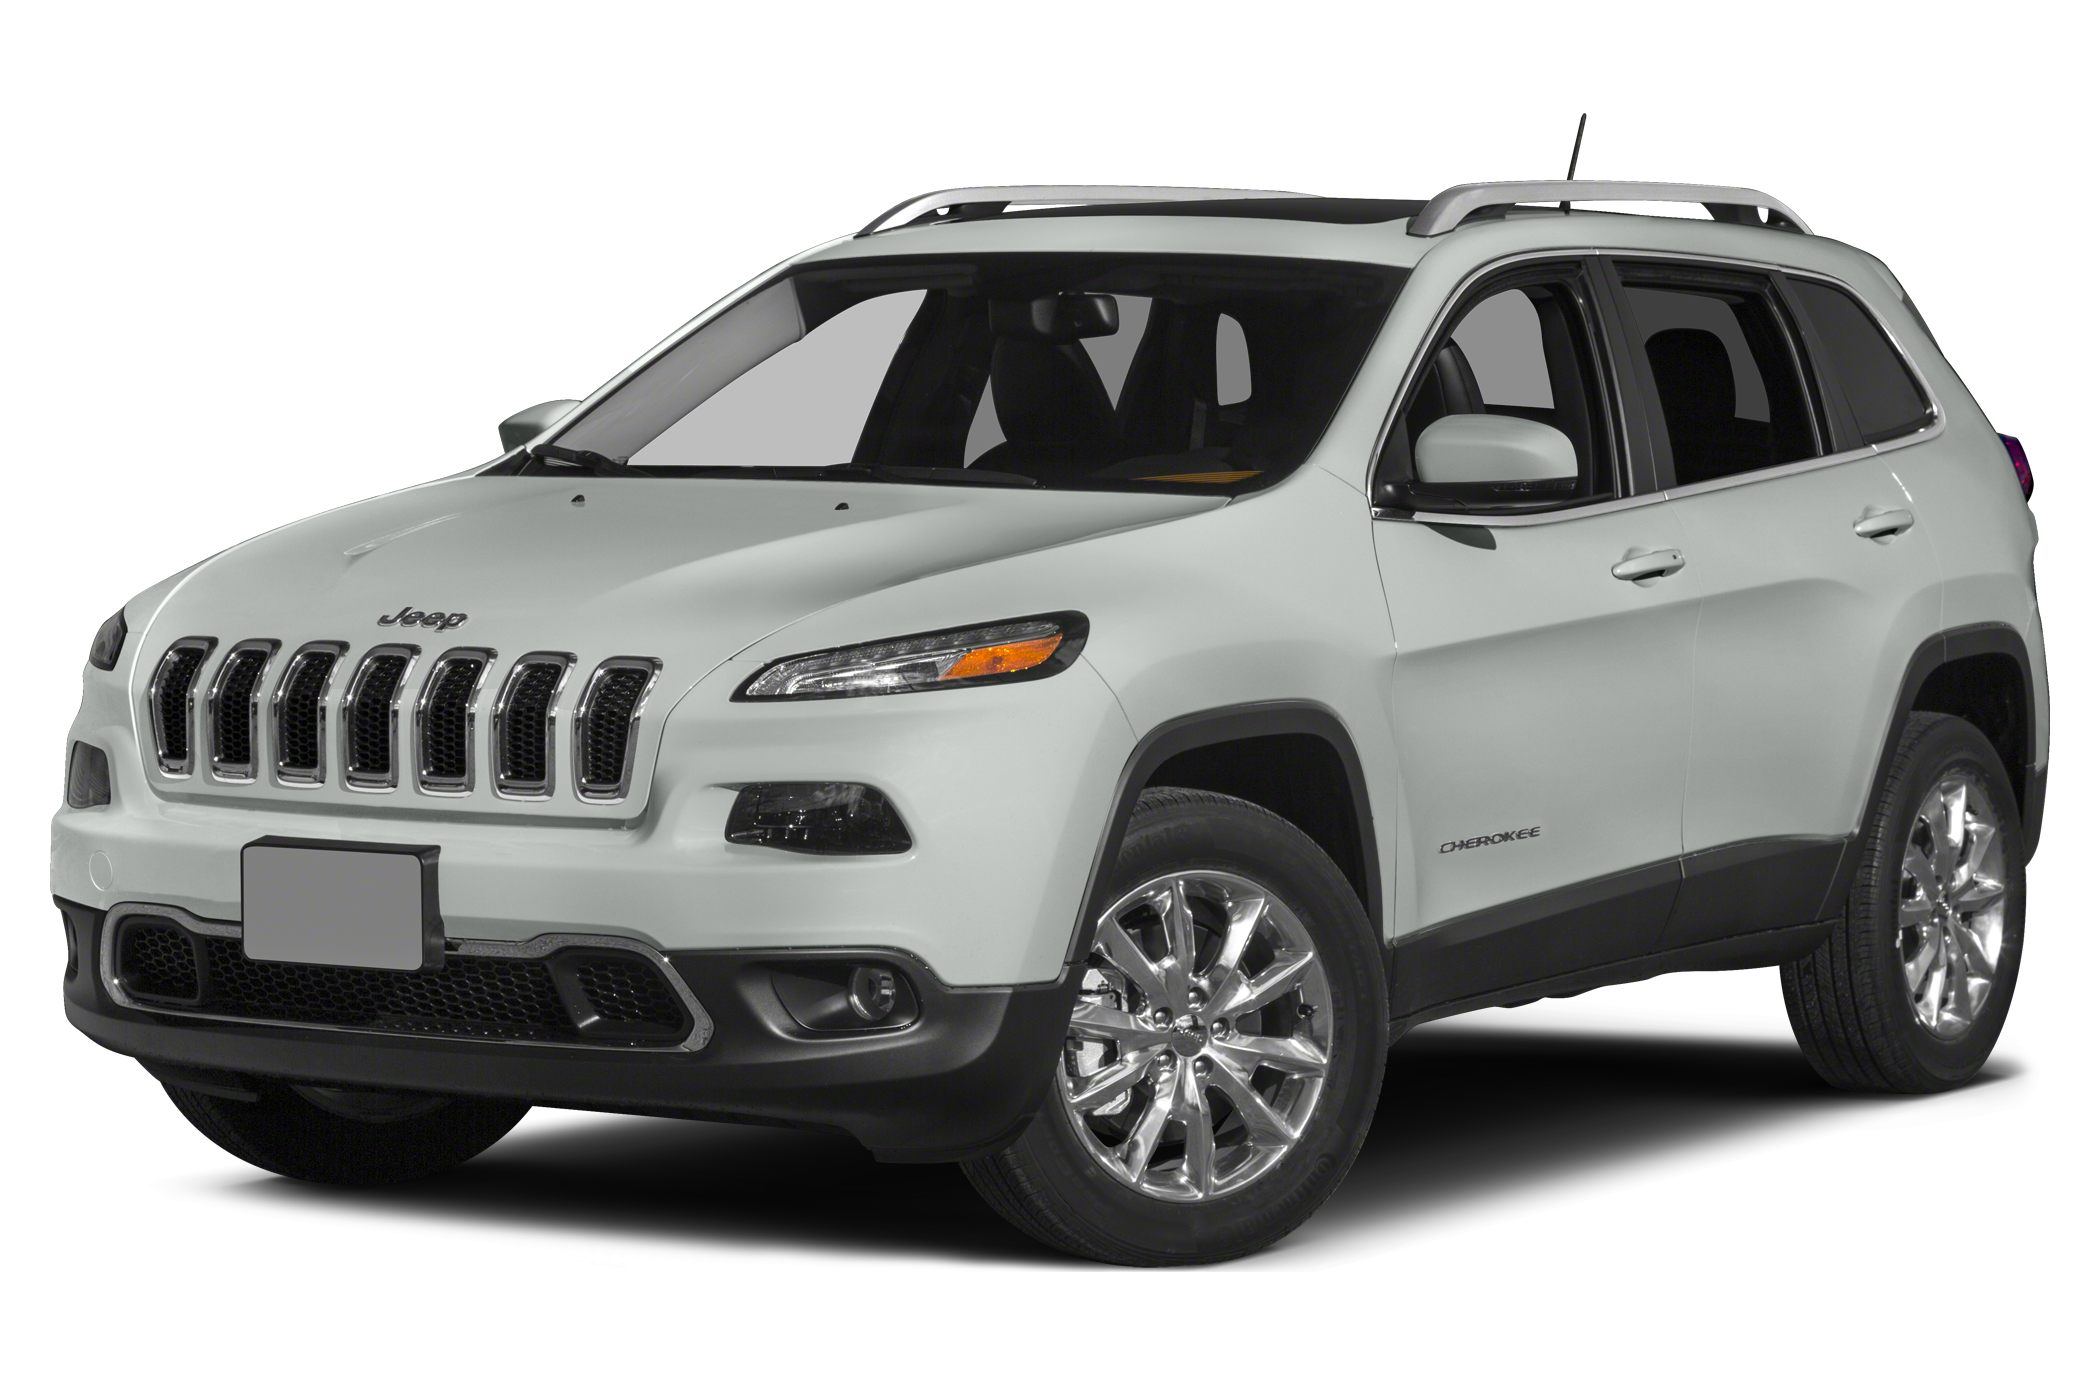 2015 Jeep Cherokee Limited SUV for sale in Camdenton for $31,850 with 0 miles